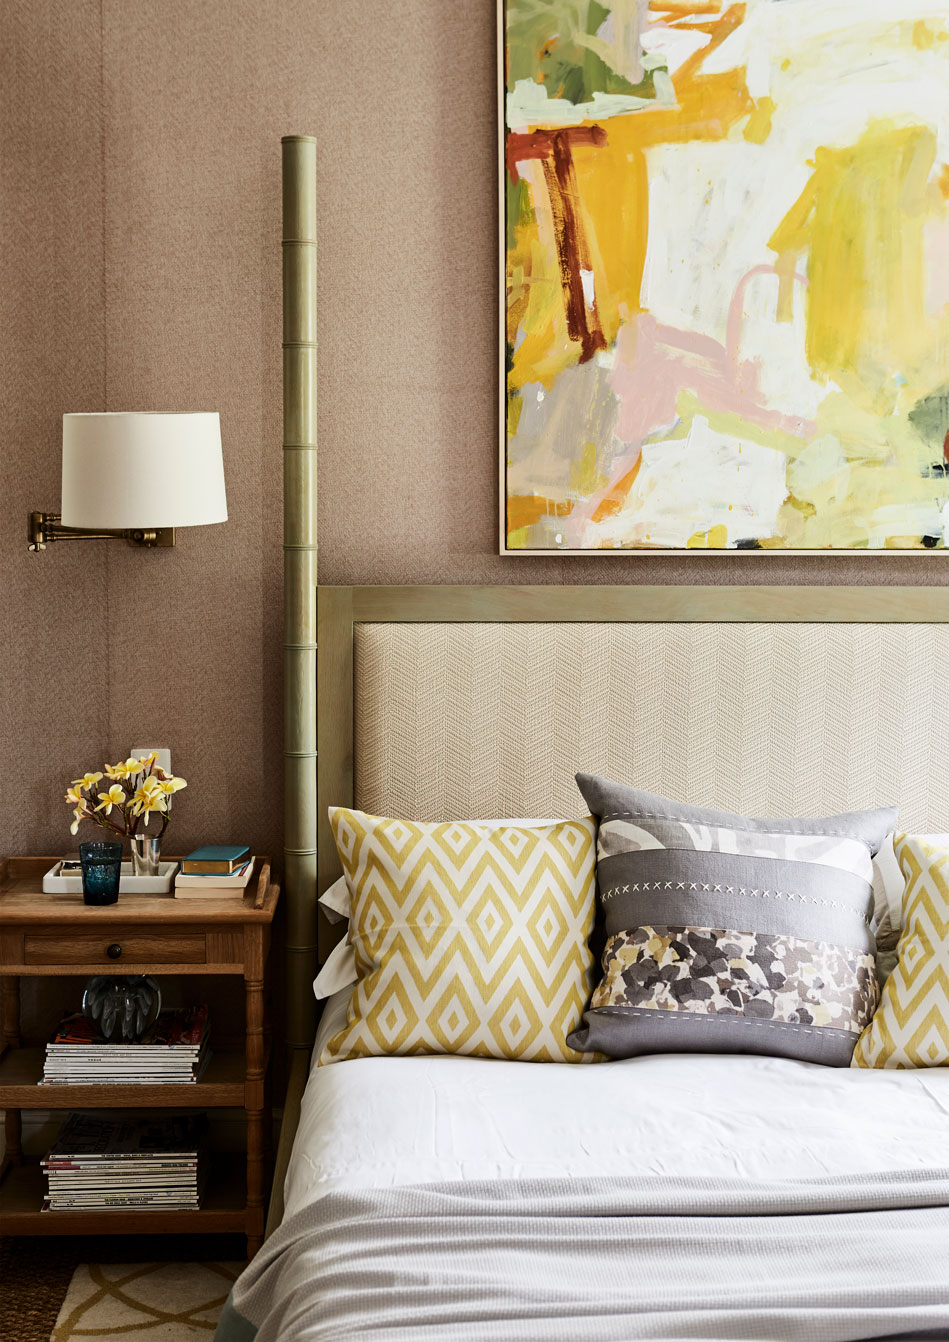 The main bedroom has a relatively muted colour palette‭, ‬with the bright tones of the recently acquired artwork adding a few more‭ ‬vibrant tones‭.‬